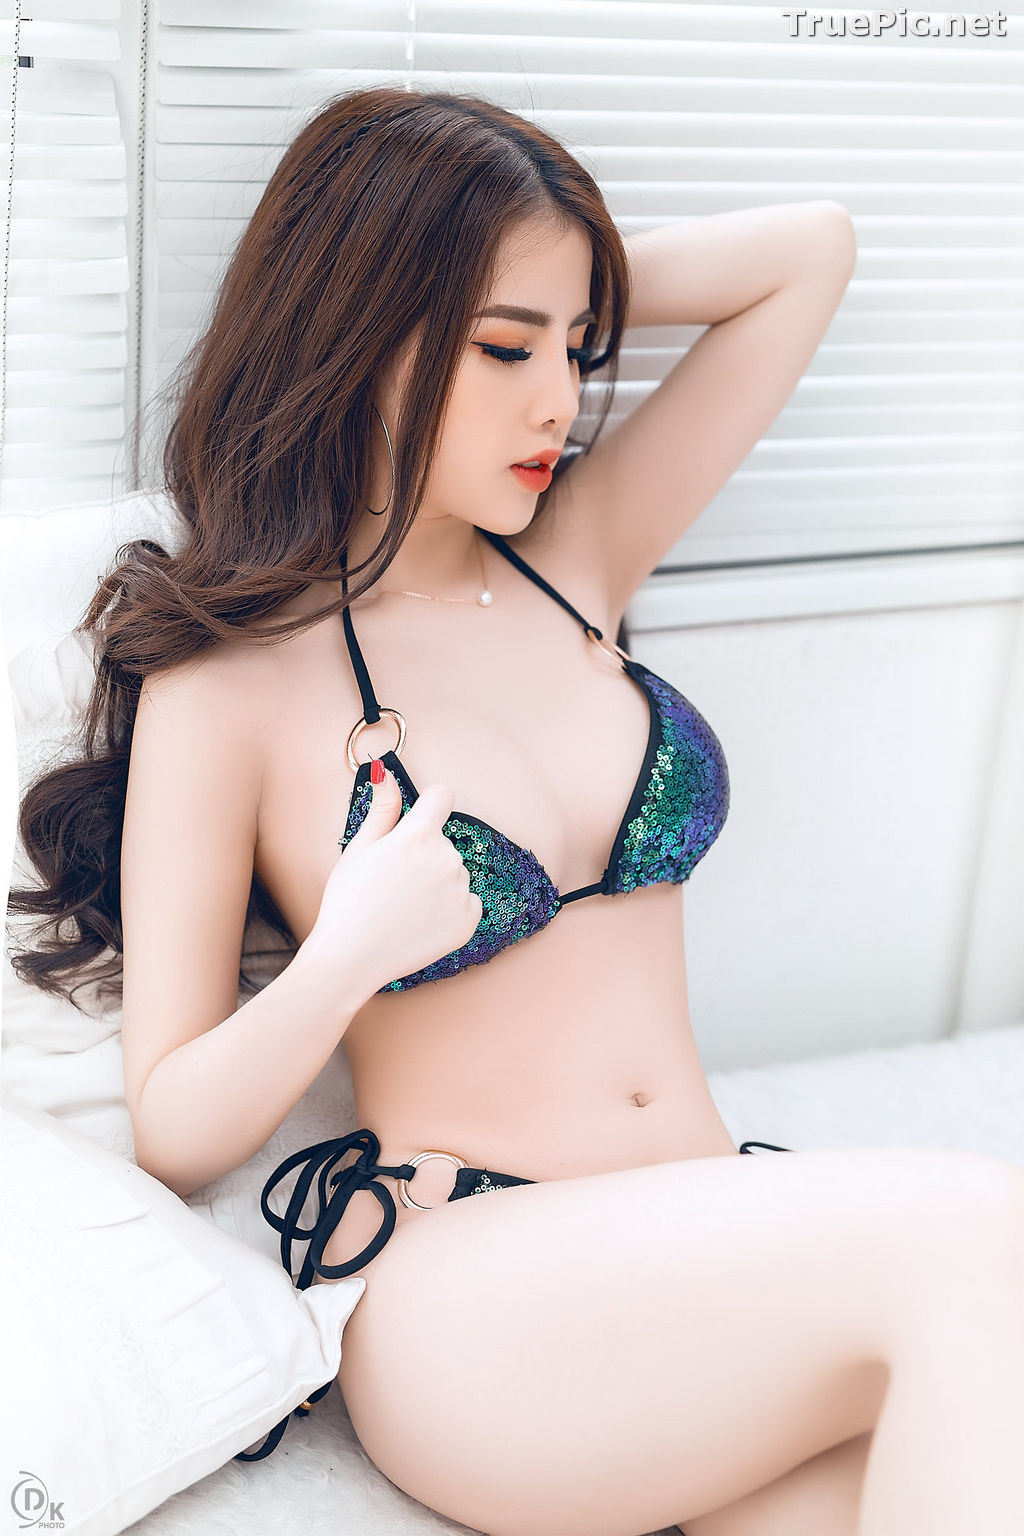 Image The Beauty of Vietnamese Girls – Photo Collection 2020 (#22) - TruePic.net - Picture-4